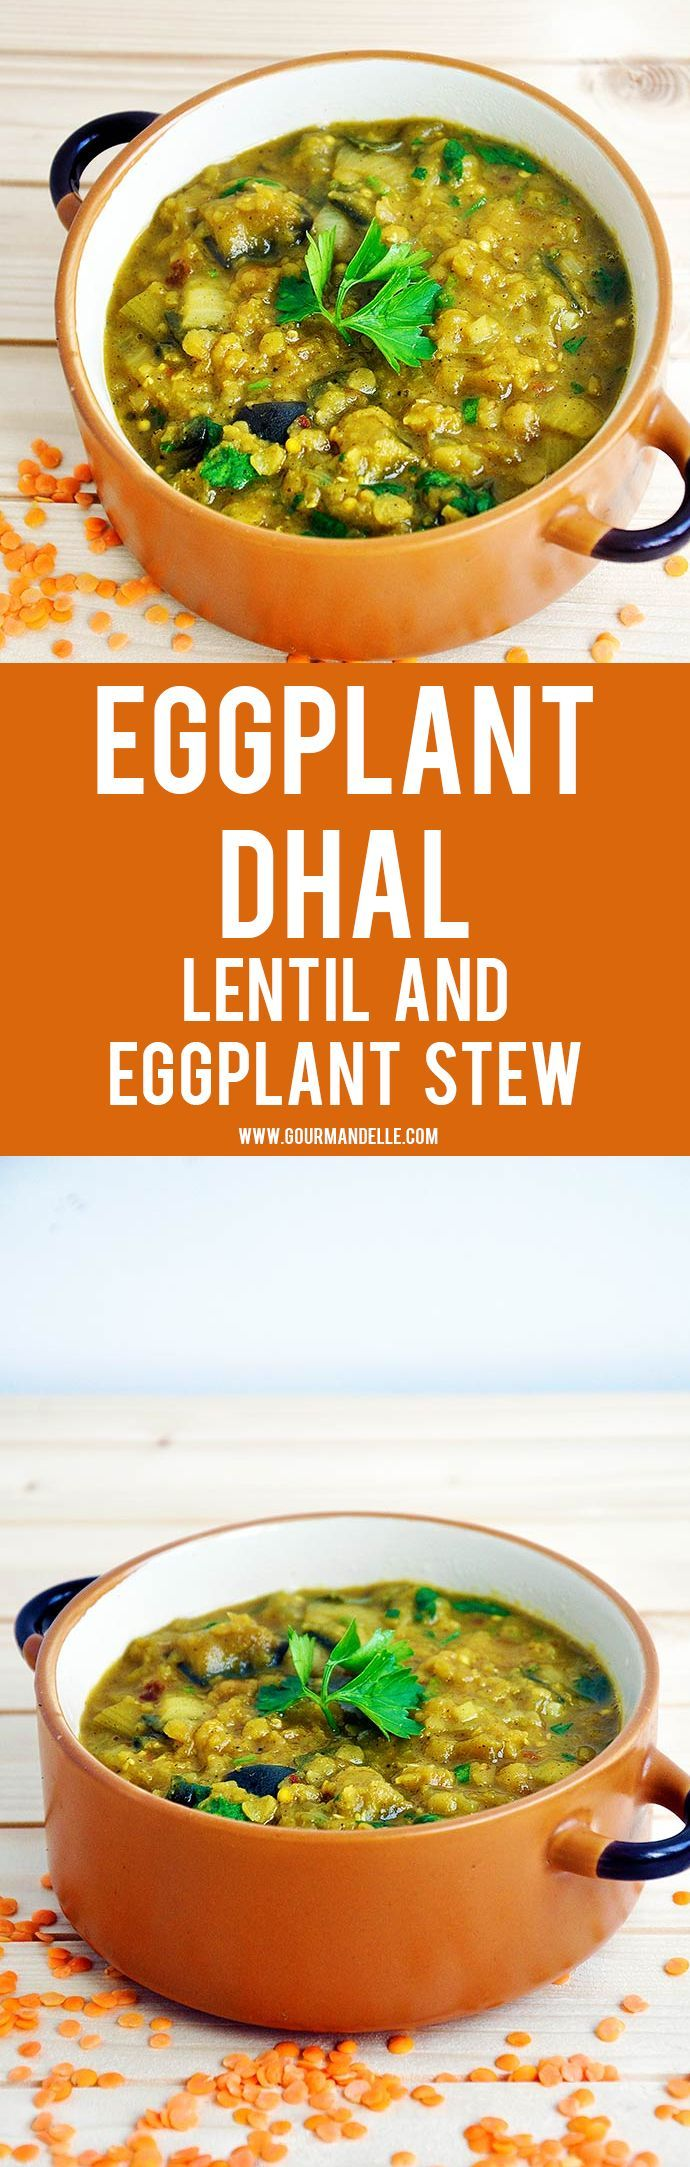 Even if you're not a big fan of Indian food, you will absolutely love this eggplant dhal recipe! It's easy to make, budget-friendly and perfect for a family dinner! #indianfood #eggplant #lentils